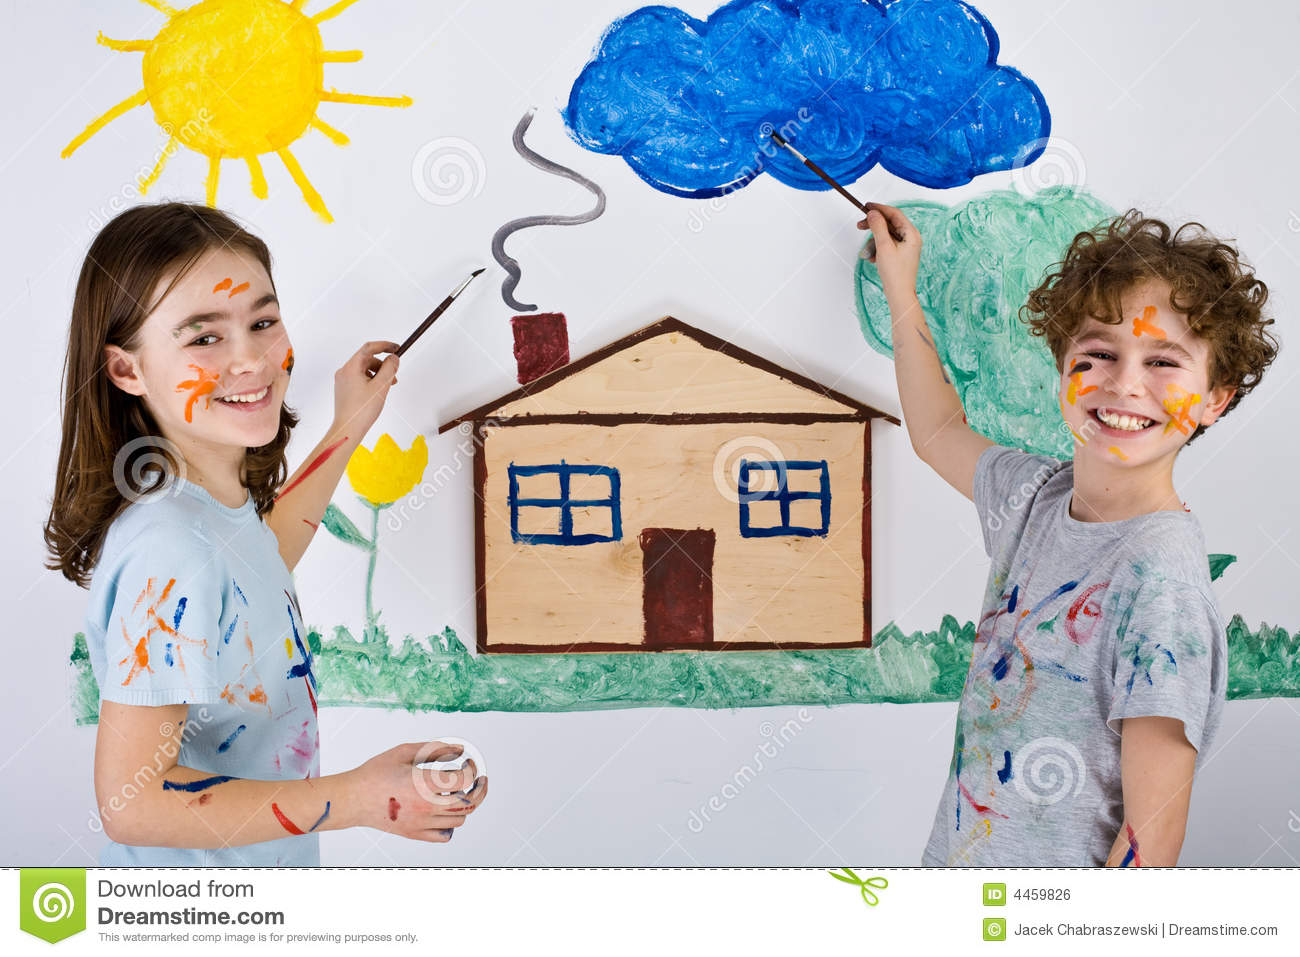 Royalty Free Stock Image Kids Painting Image4459826 on Pool House Plans Free